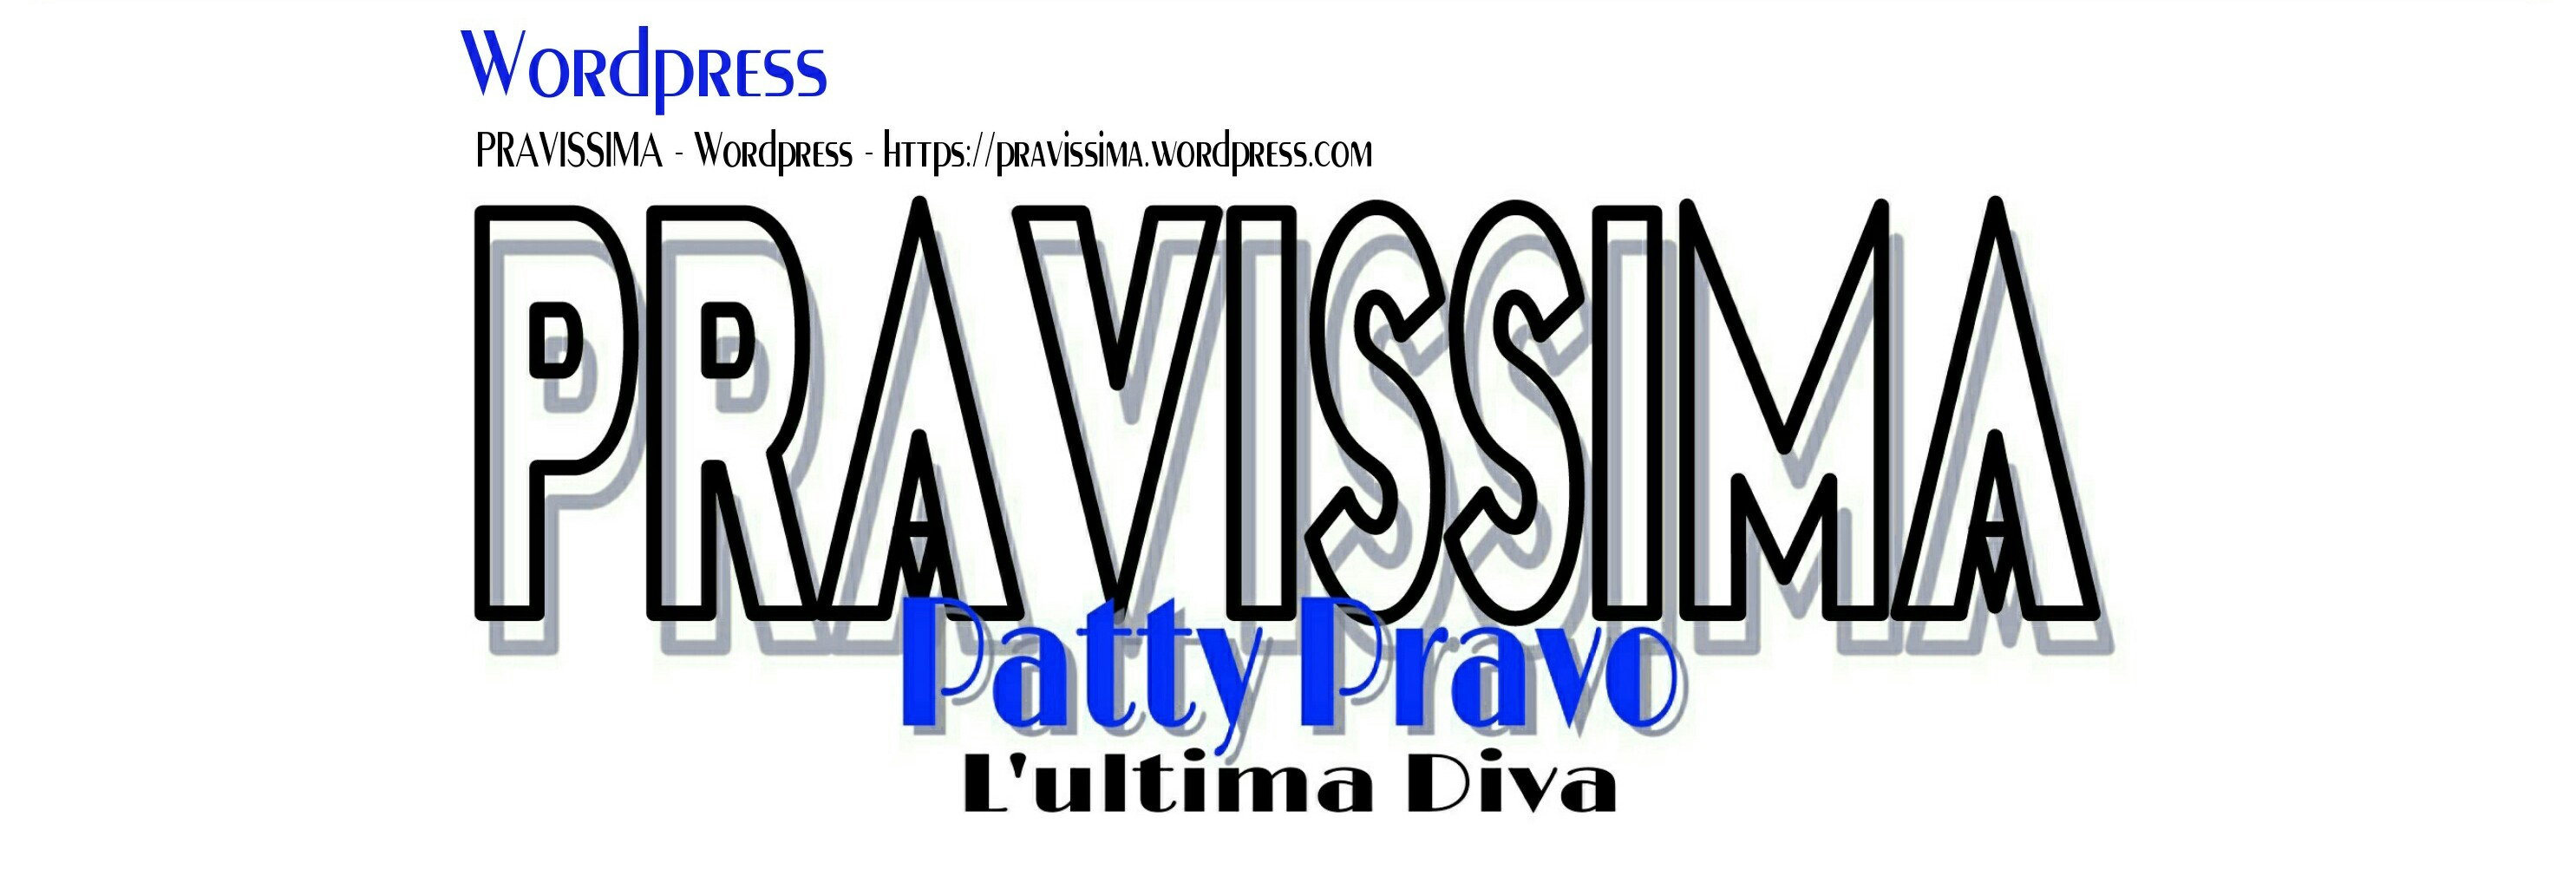 PRAVISSIMA – Patty Pravo – L'Ultima Diva – Wordpress